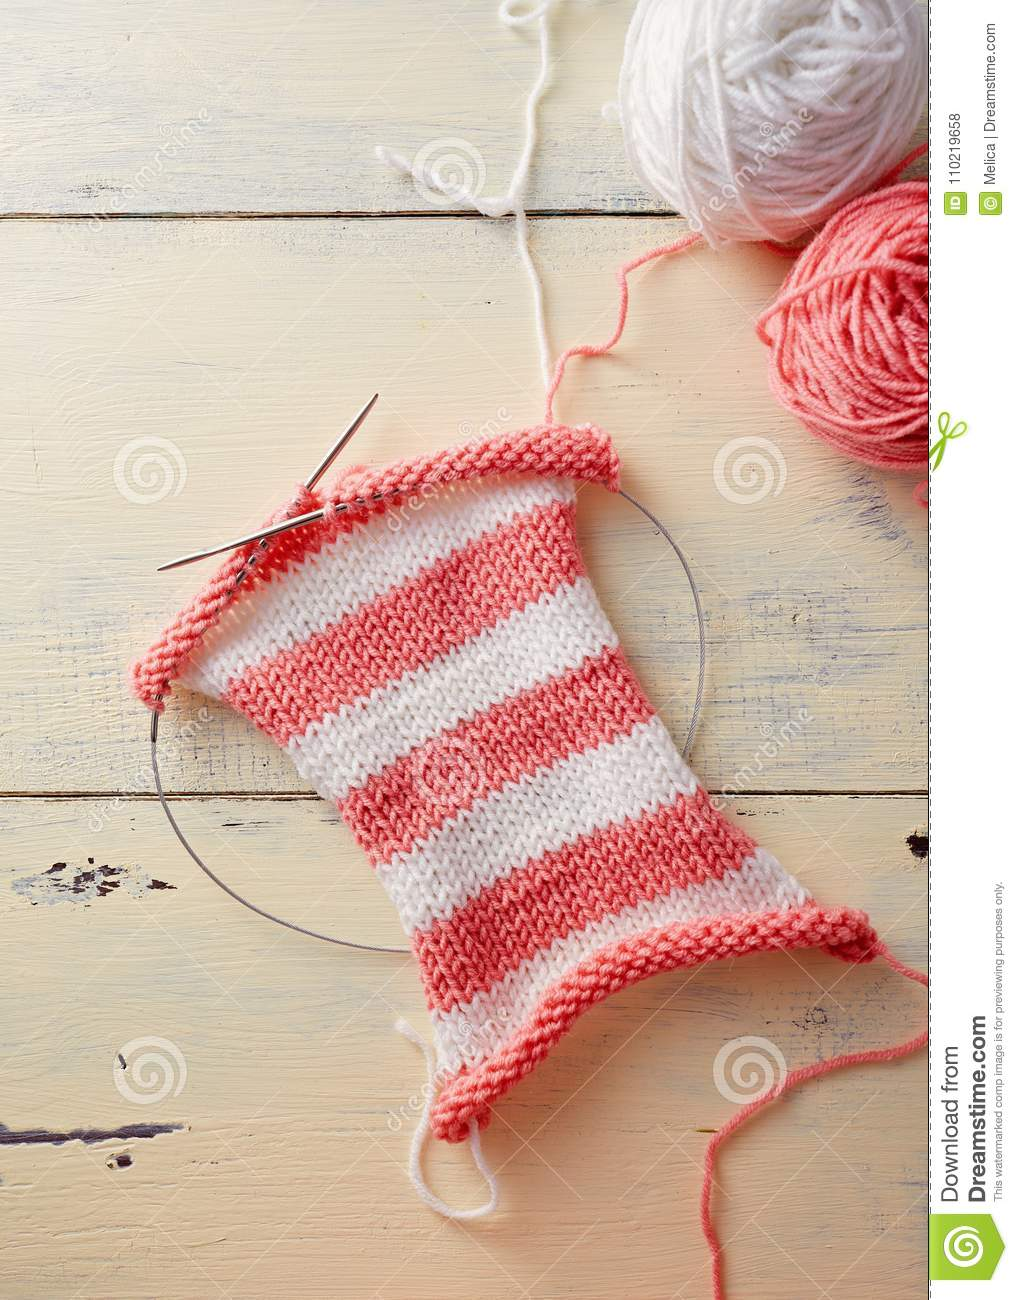 knitting stripes with two colors of yarn